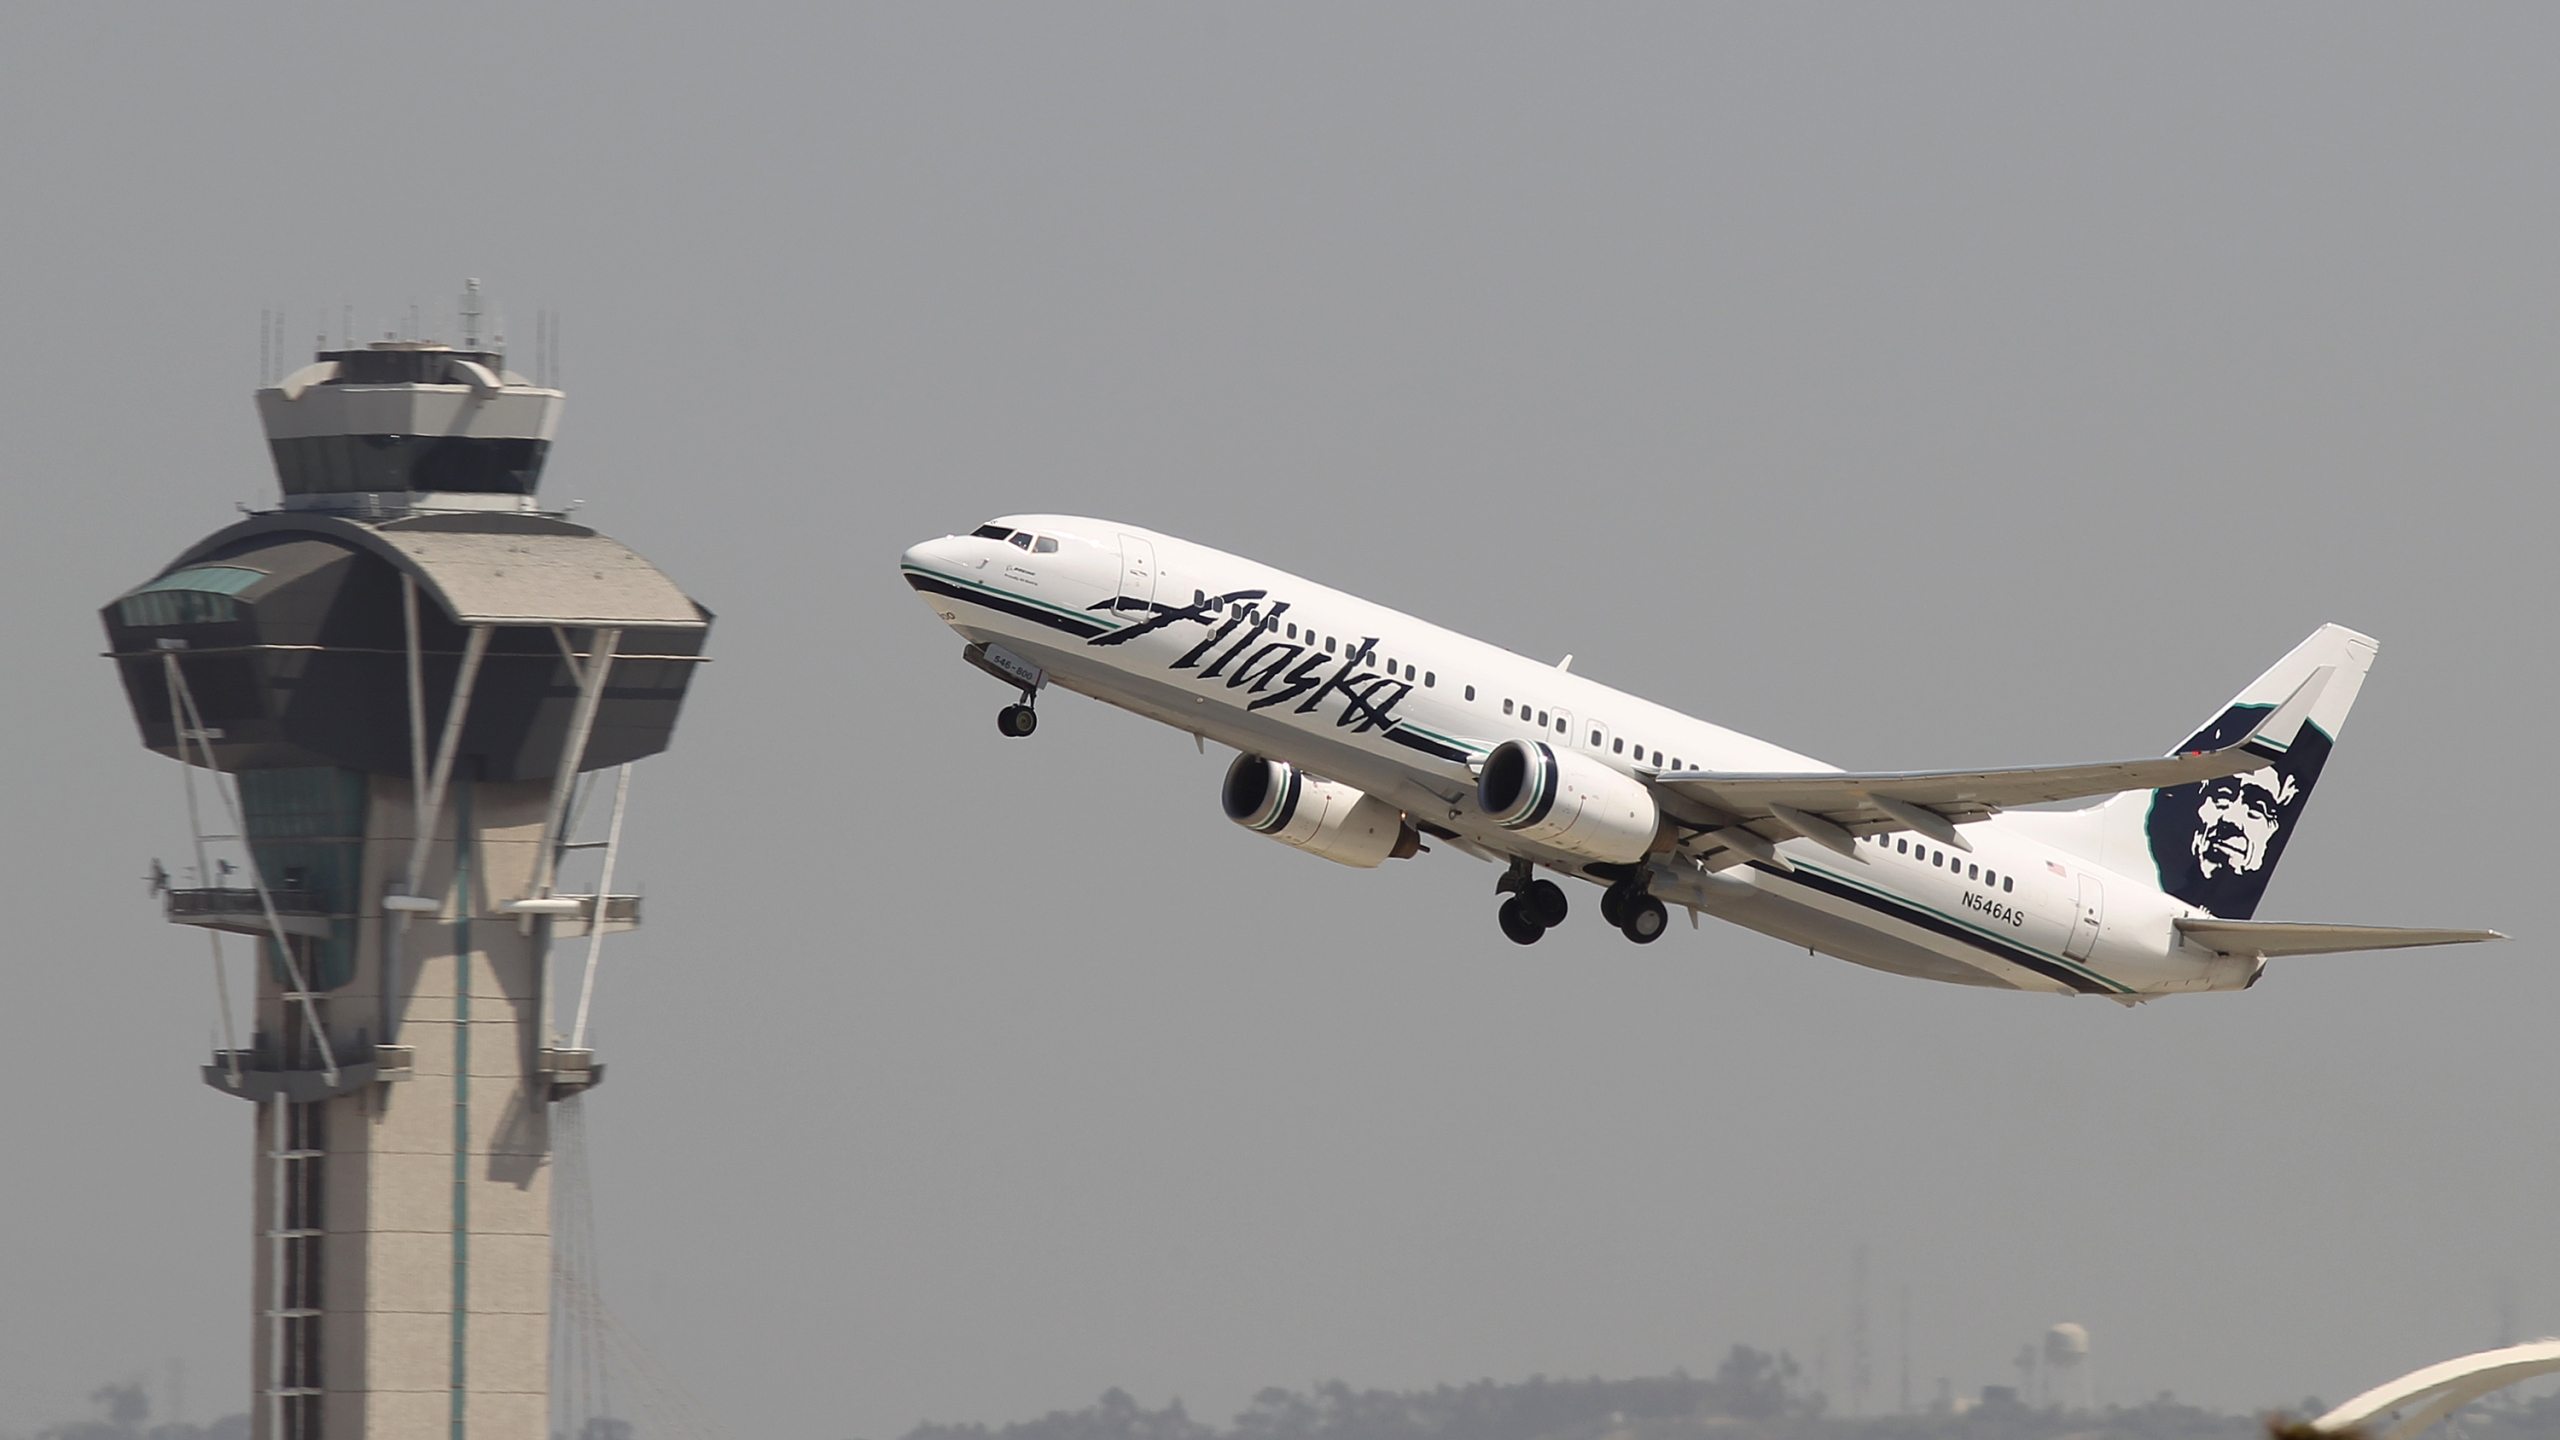 An Alaska Airlines jet passes the air traffic control tower at Los Angeles International Airport during take-off on April 22, 2013. (Credit: David McNew/Getty Images)